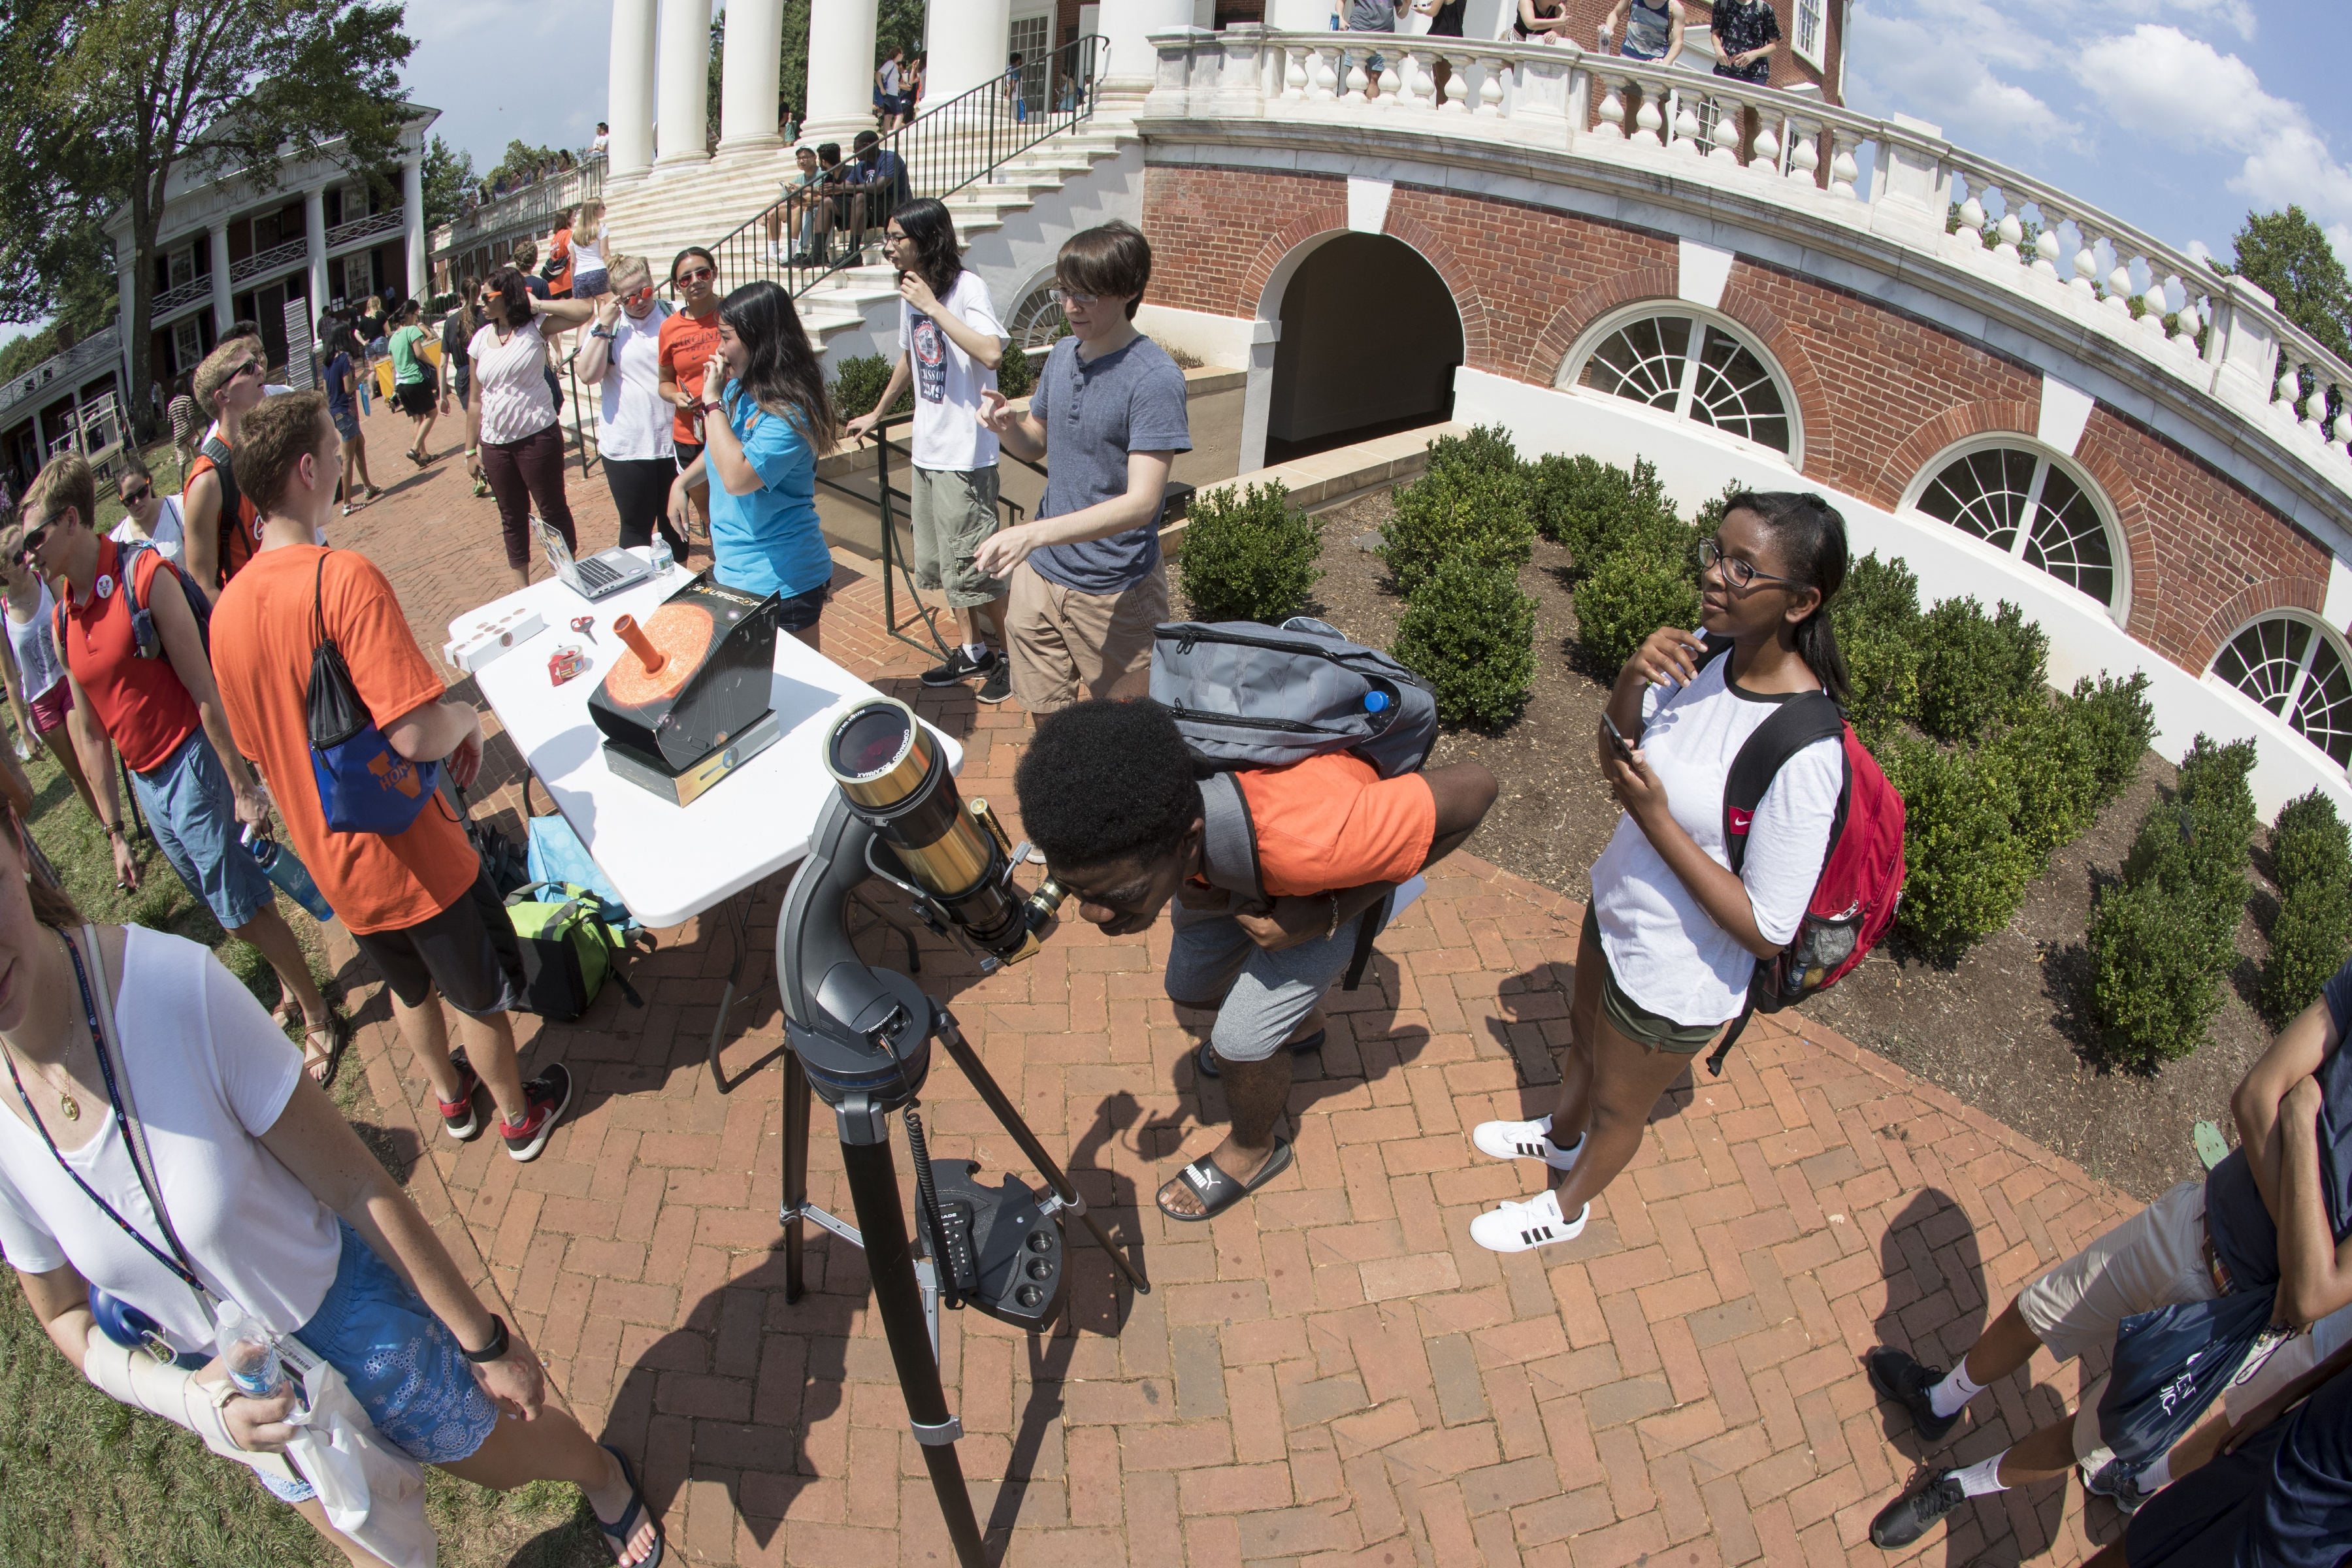 First-year student Emmanuel Ndumbe peers through the H-alpha telescope. (Photo by Dan Addison, University Communications)